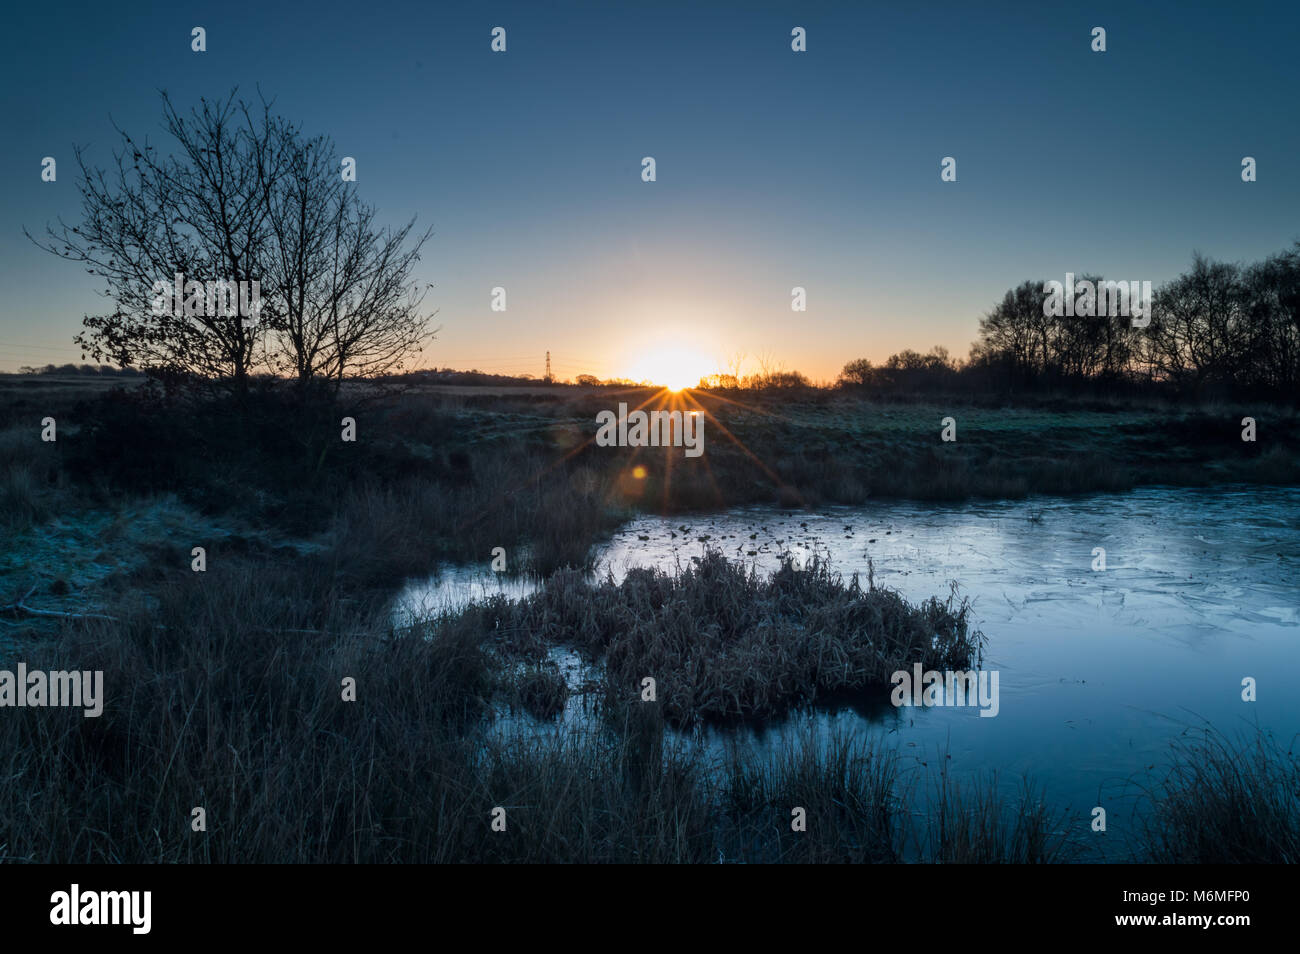 A starburst of dawn light breaking on a frozen pond on Wetley Moor Staffordshire. - Stock Image